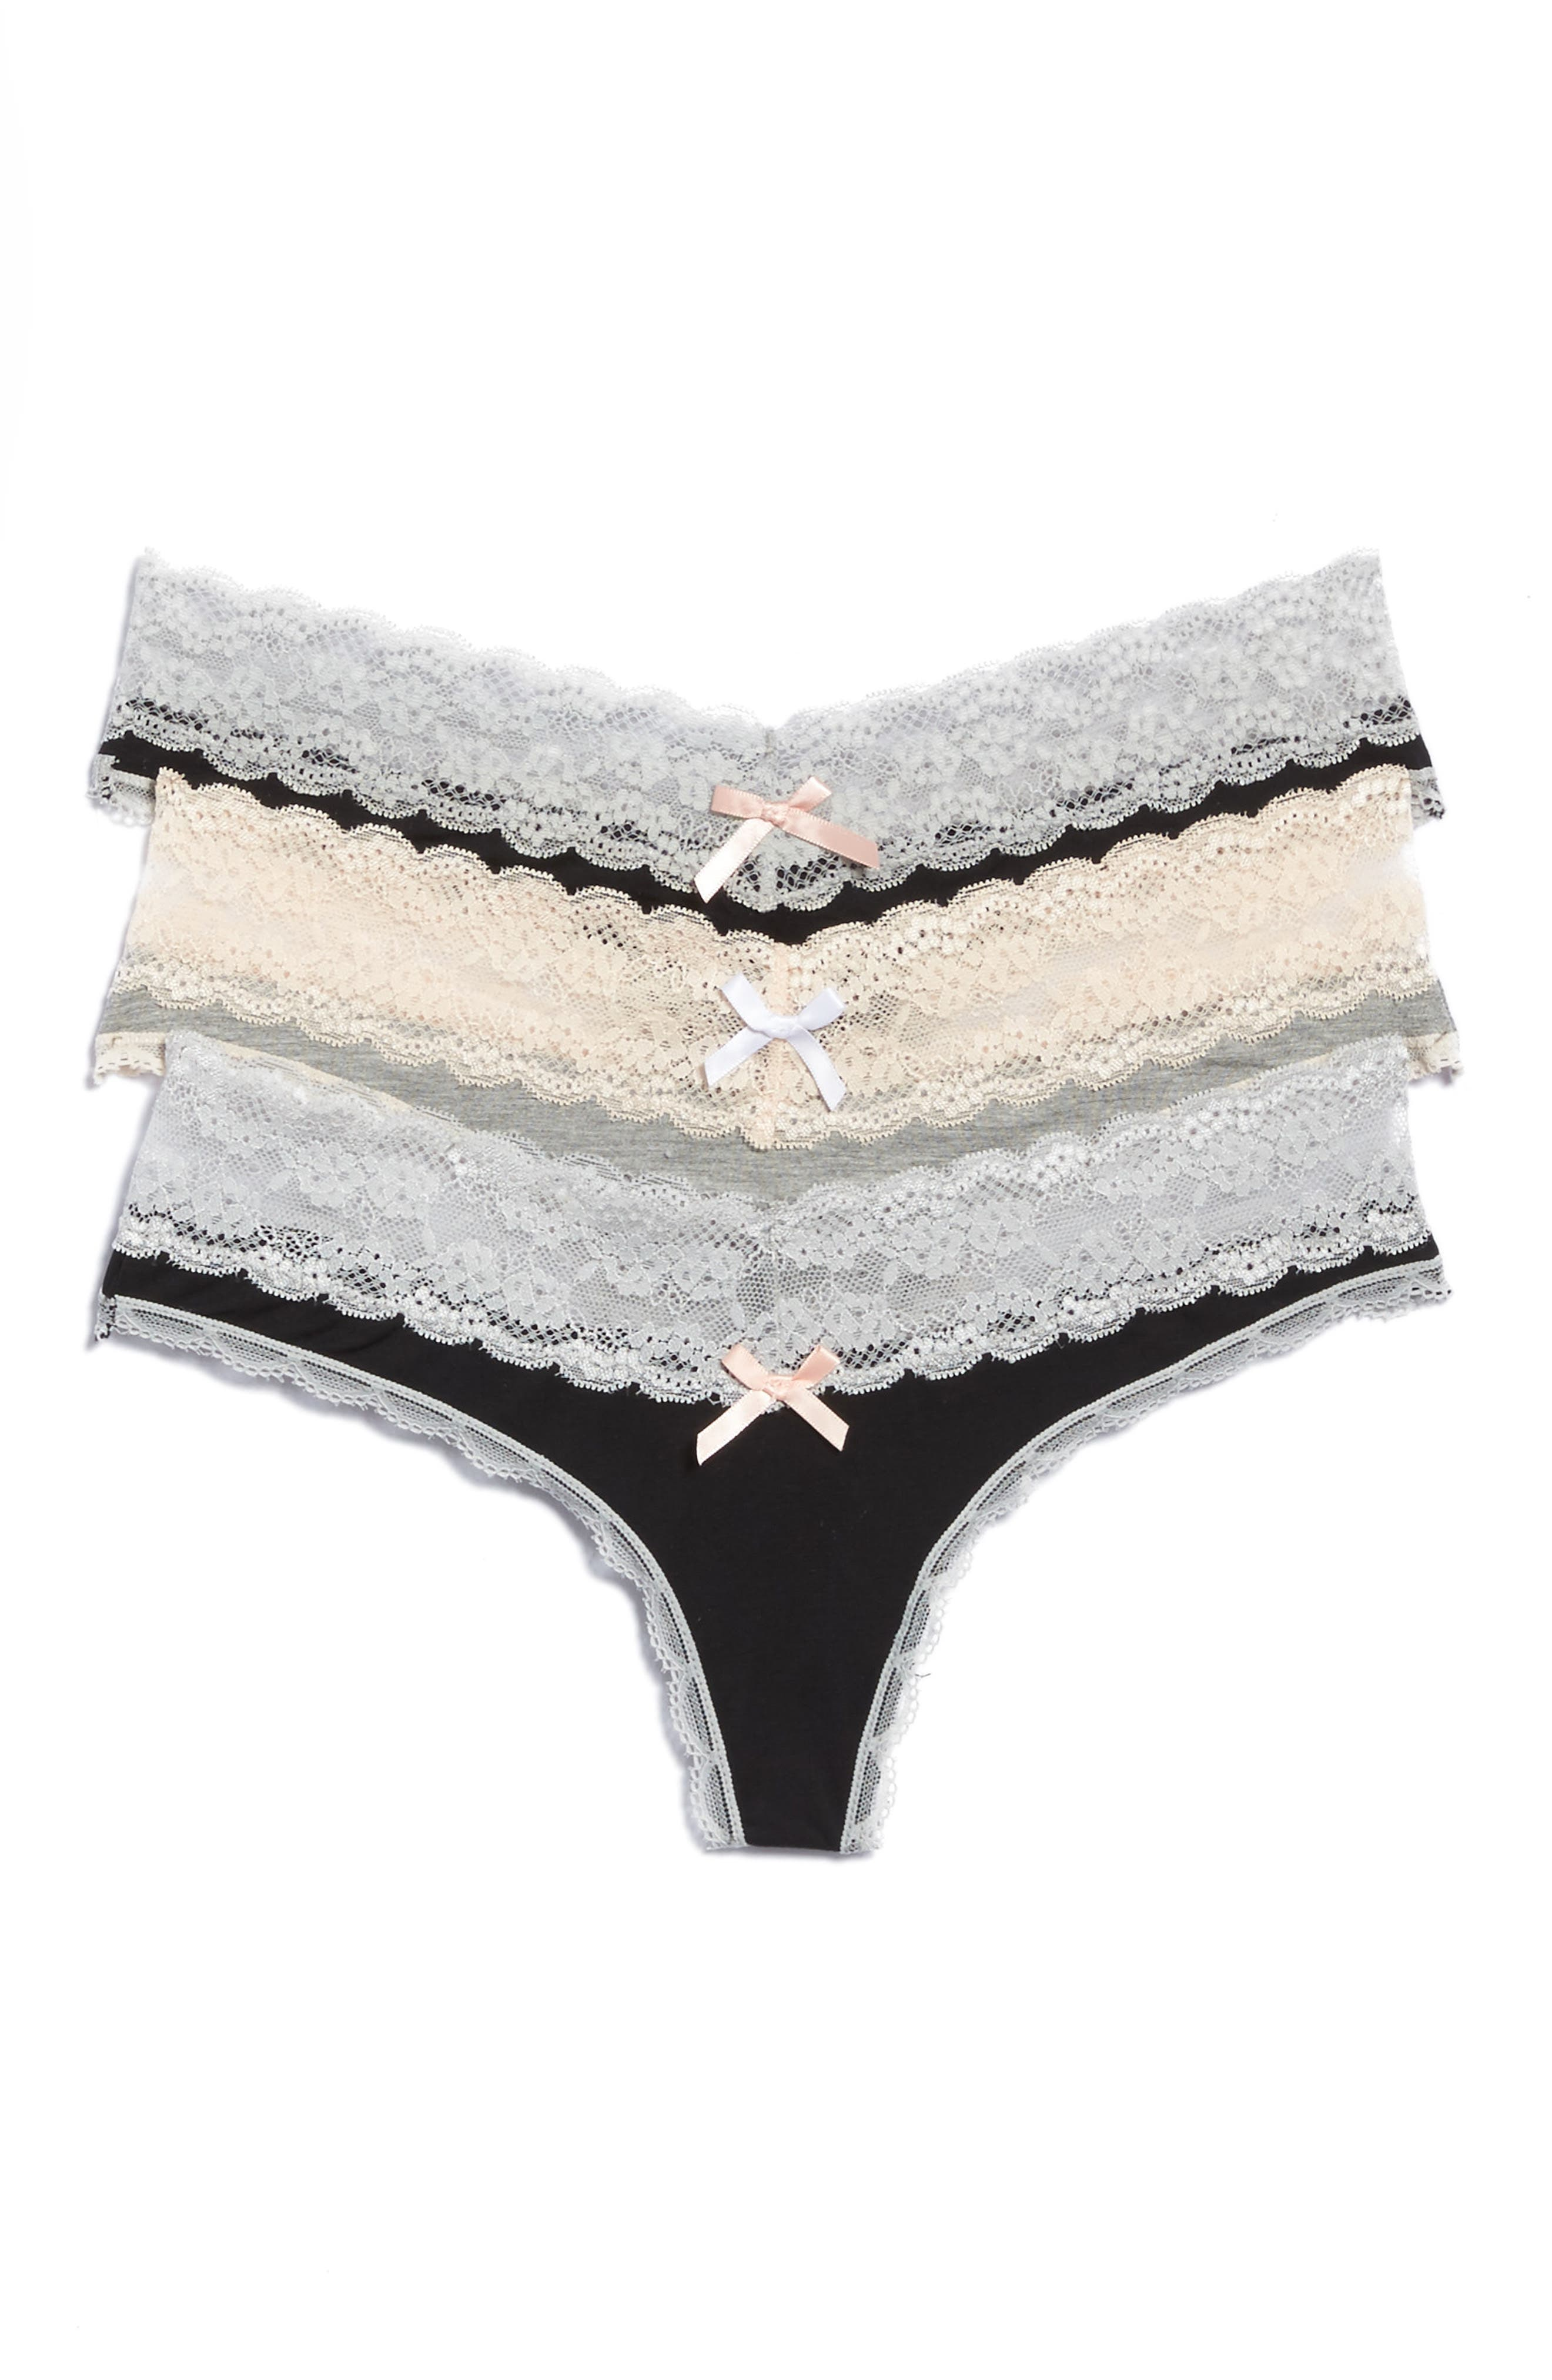 Ahna 3-Pack Lace Thong,                         Main,                         color, BLACK/ HEATHER GREY/ BLACK